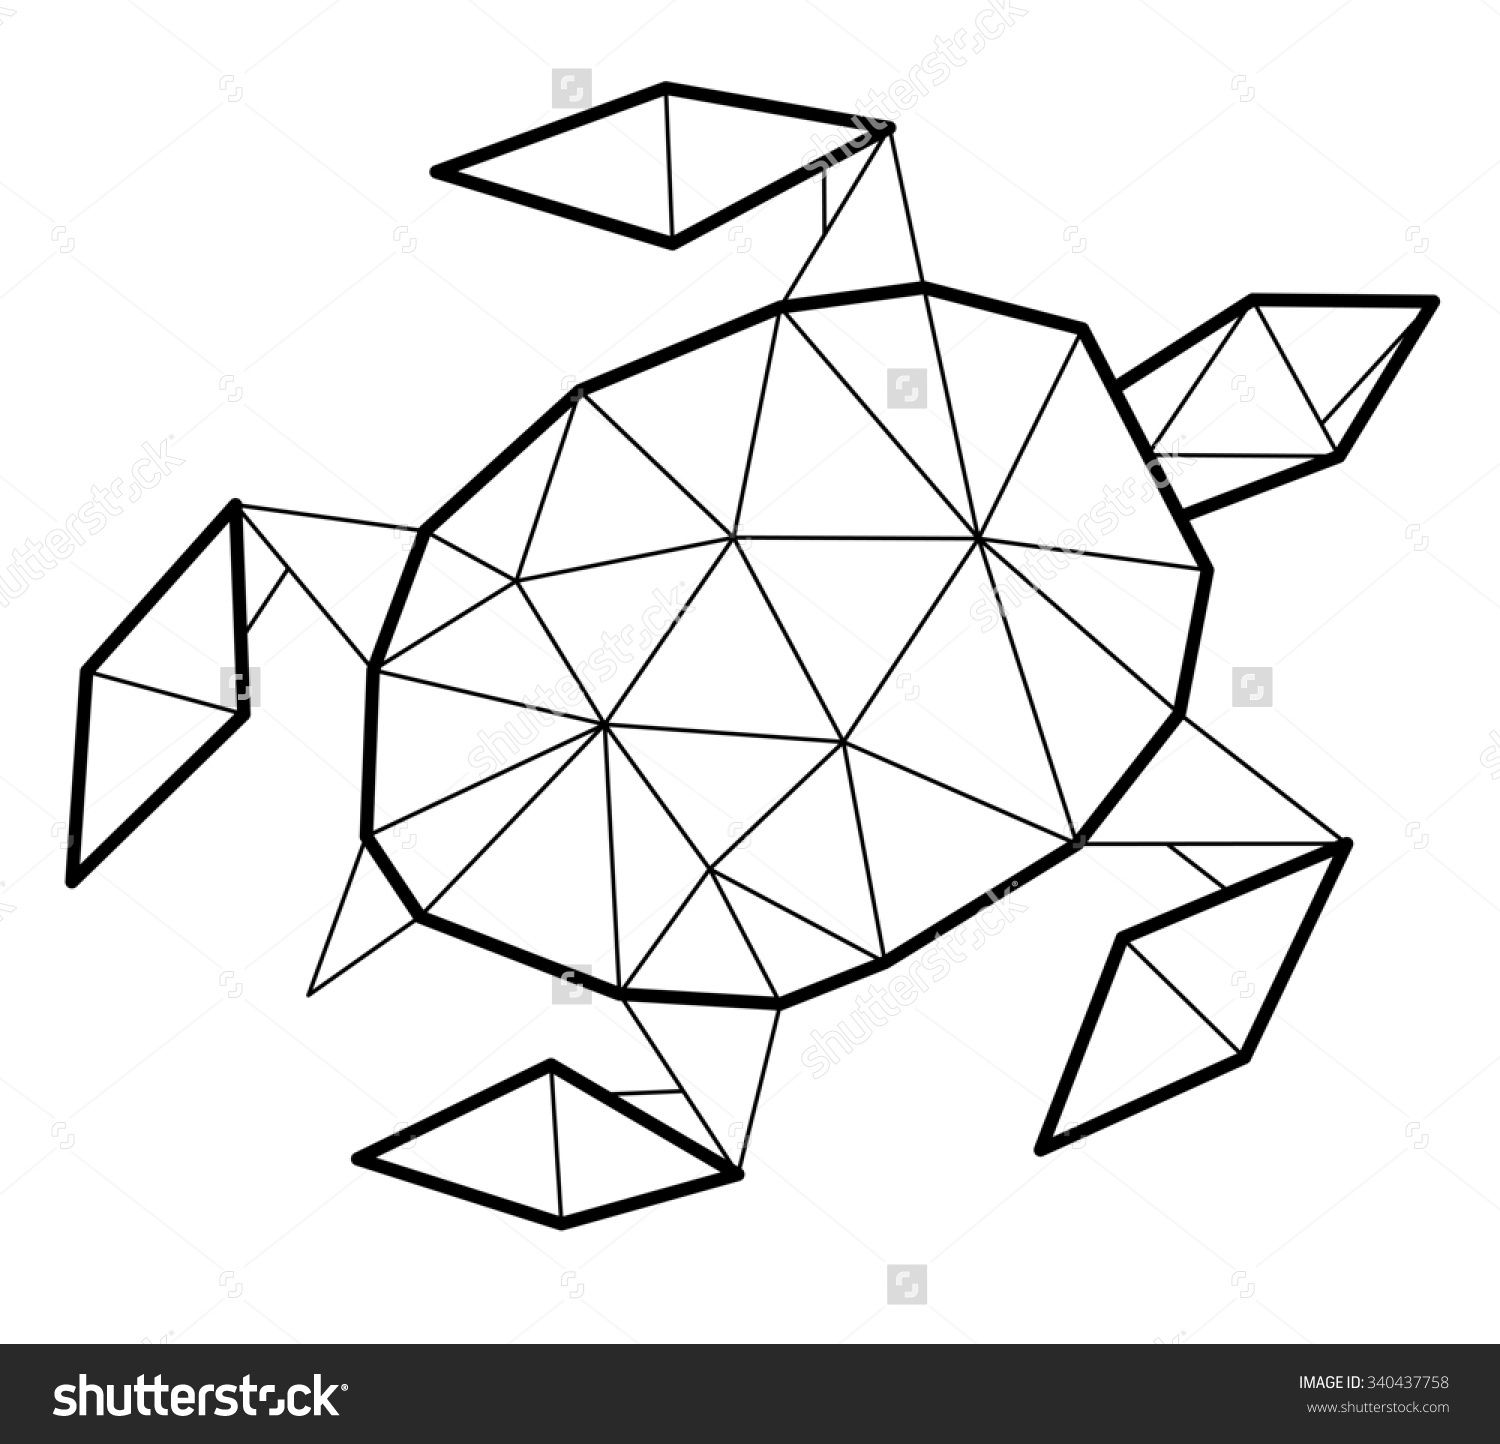 Geometrical Shapes Drawing At Getdrawings